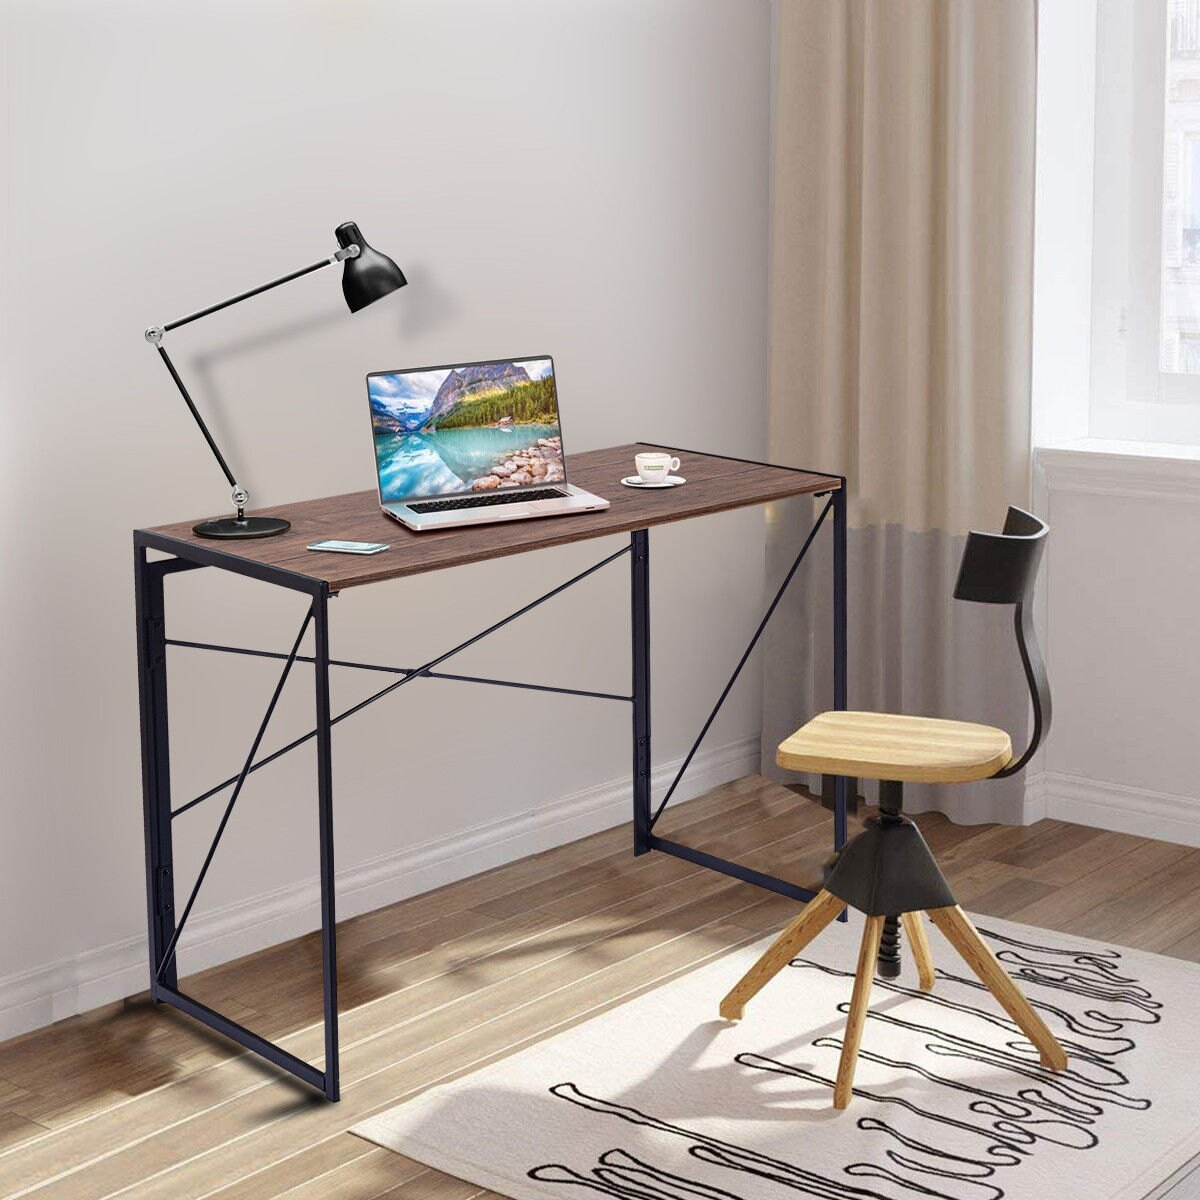 Simple Modern Office Desk Portable Computer Desk Home: Costway: Costway Folding Writing Computer Desk Modern